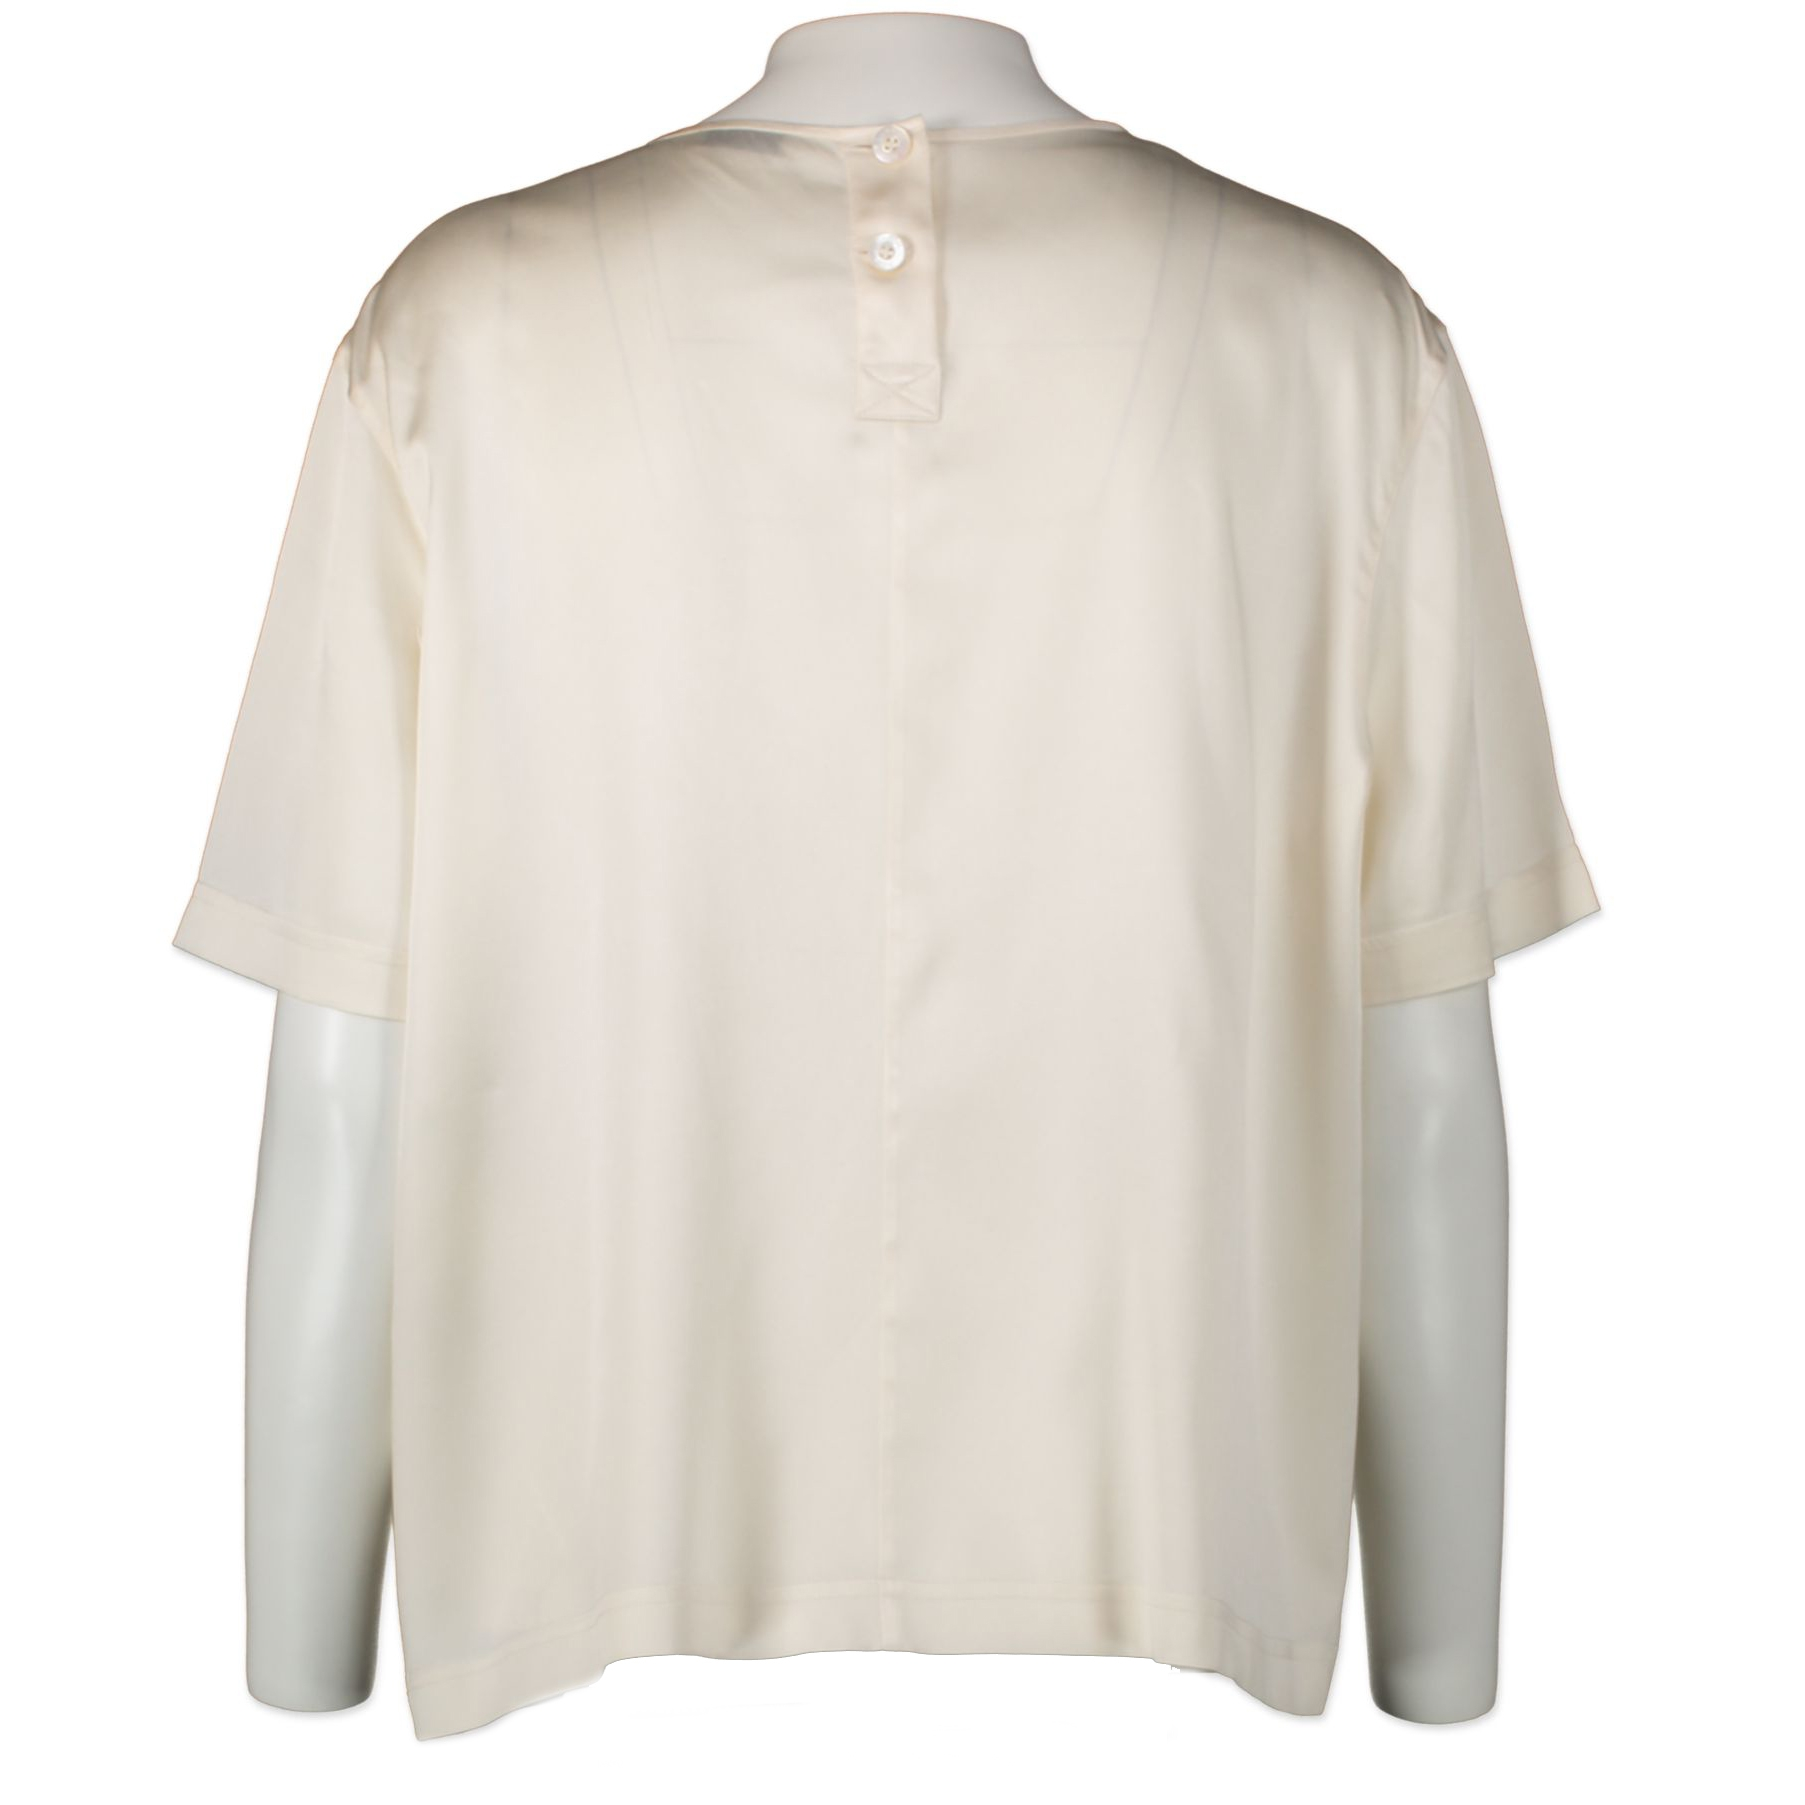 Chanel Cream Silk Shirt - size 36 - buy and sell your favourite designer items online